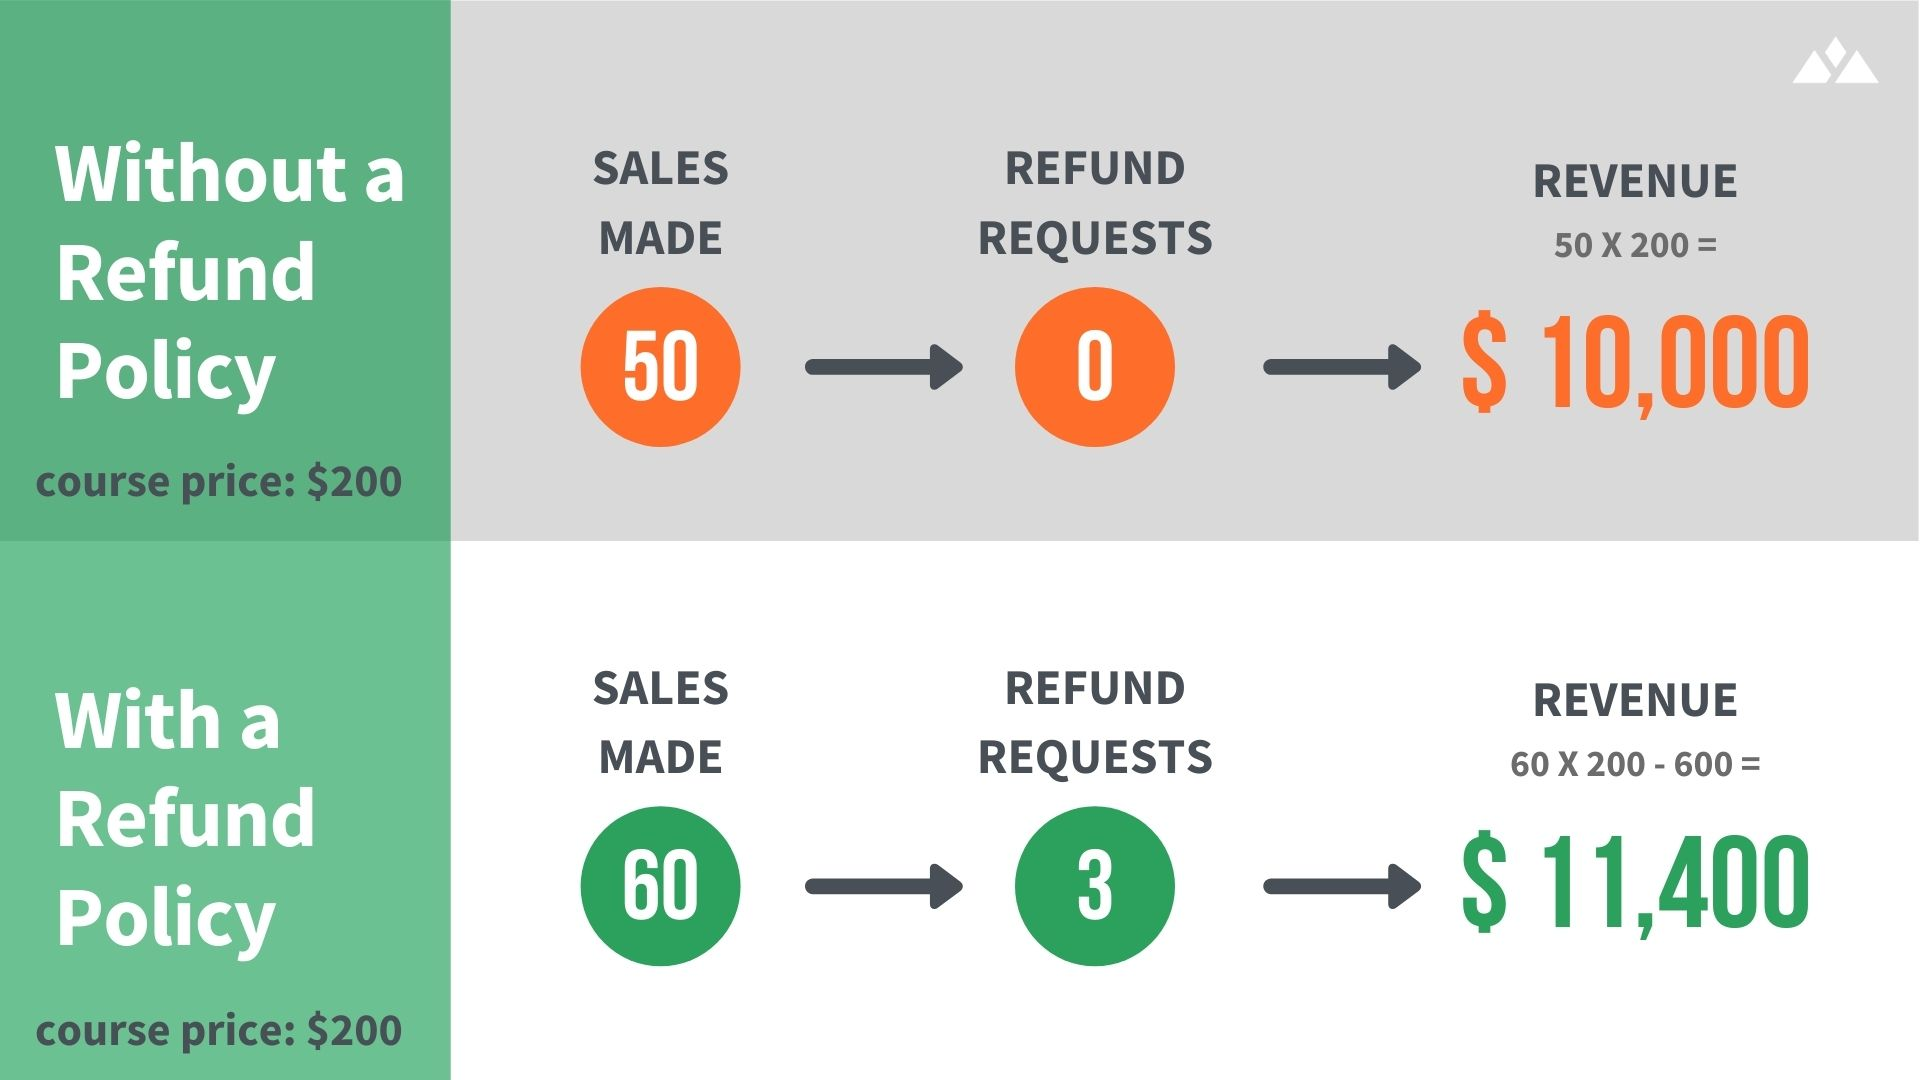 calculation of increased revenue as a result of a better online course refund policy